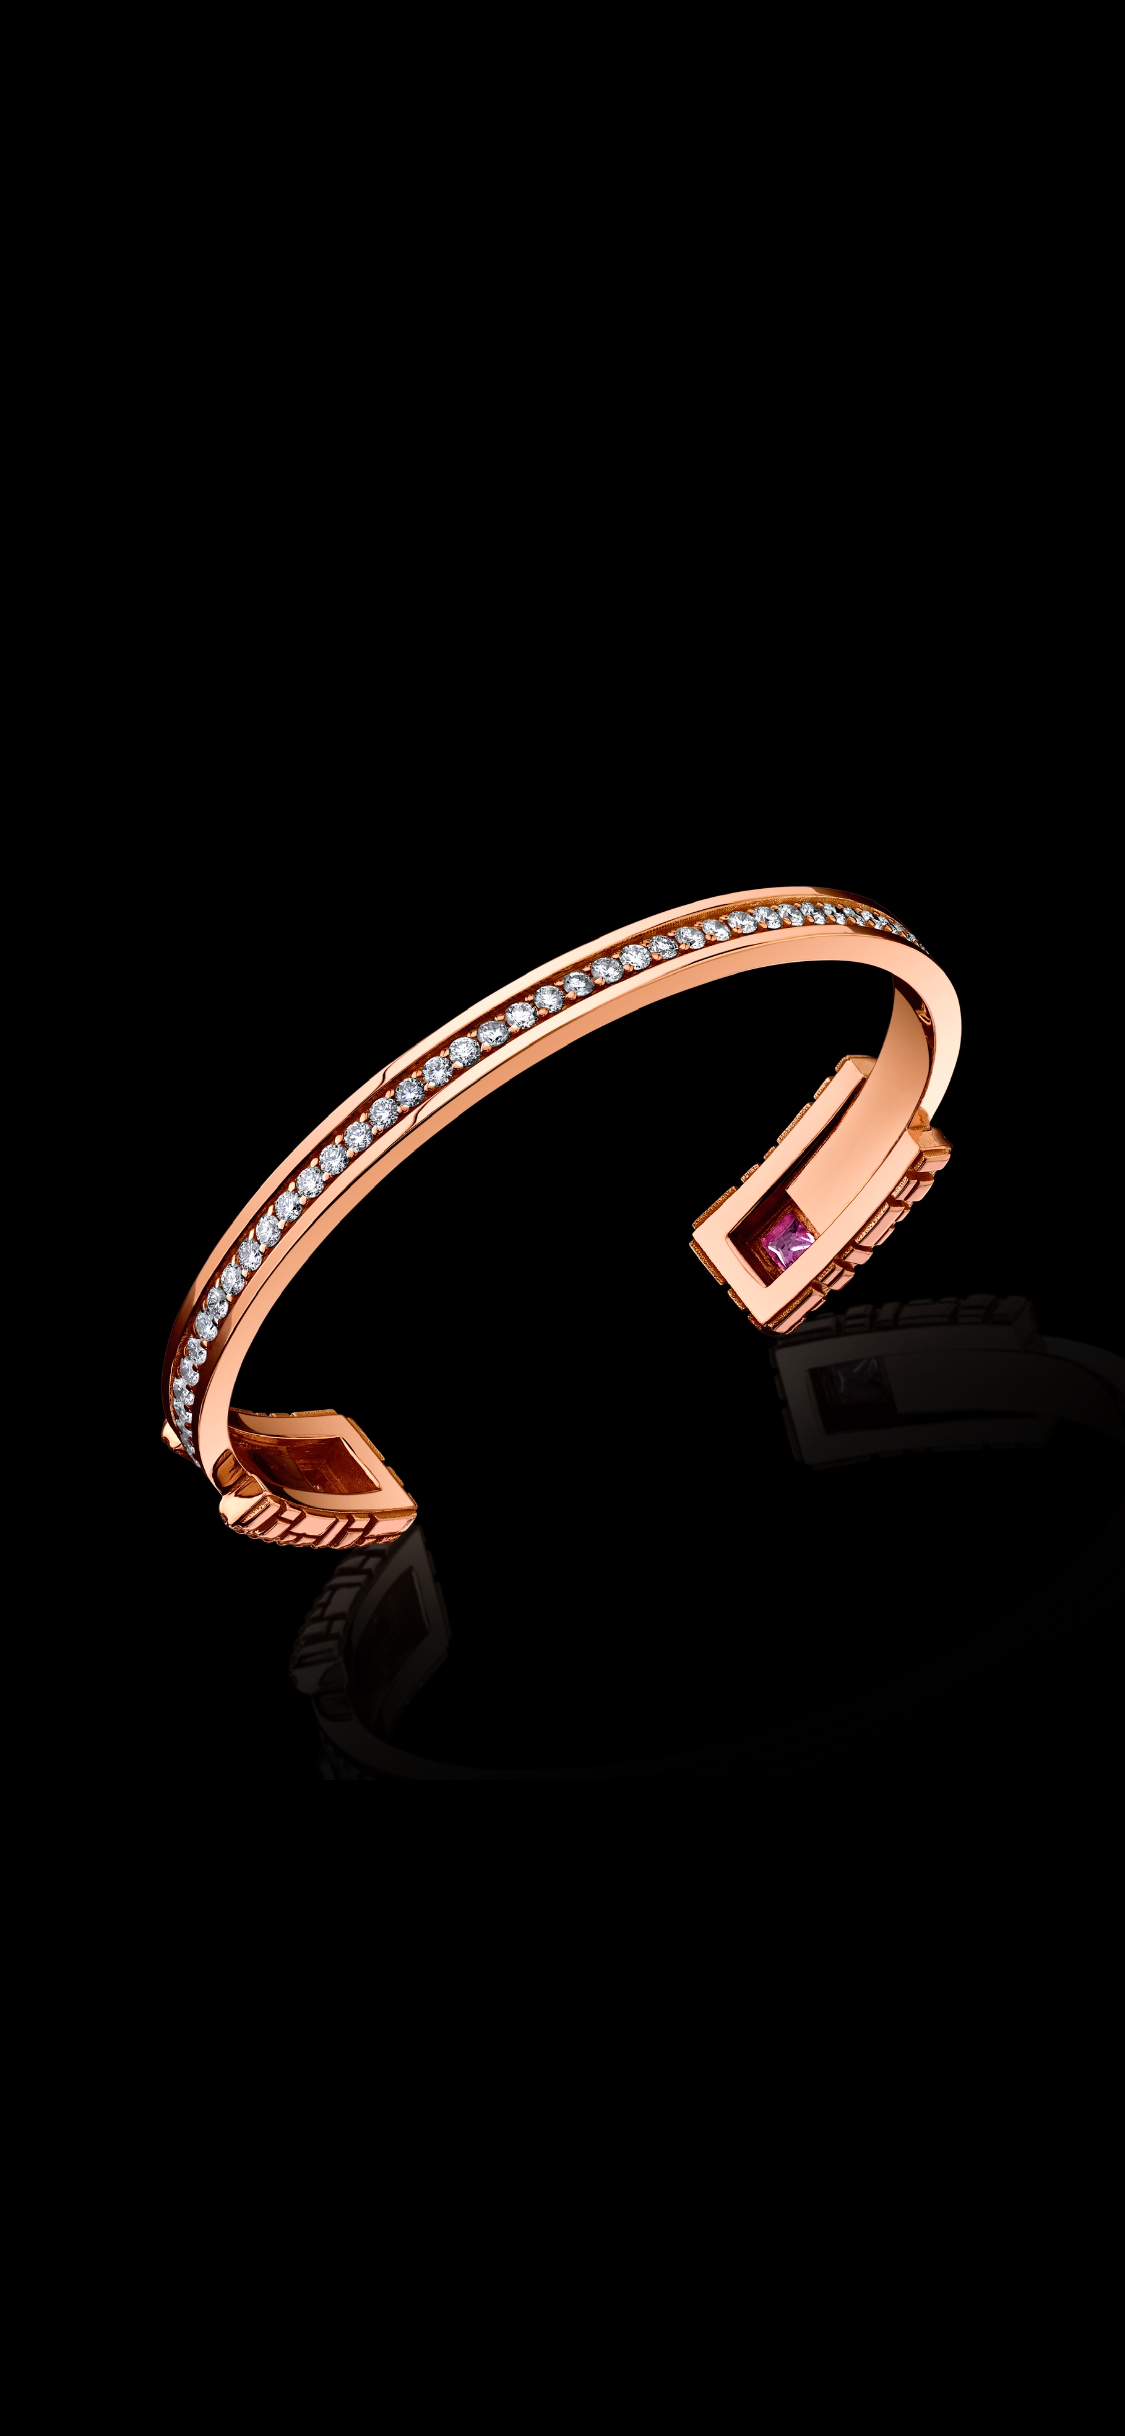 Signature Collection Cuff Bracelet with Diamonds + Pink Sapphires